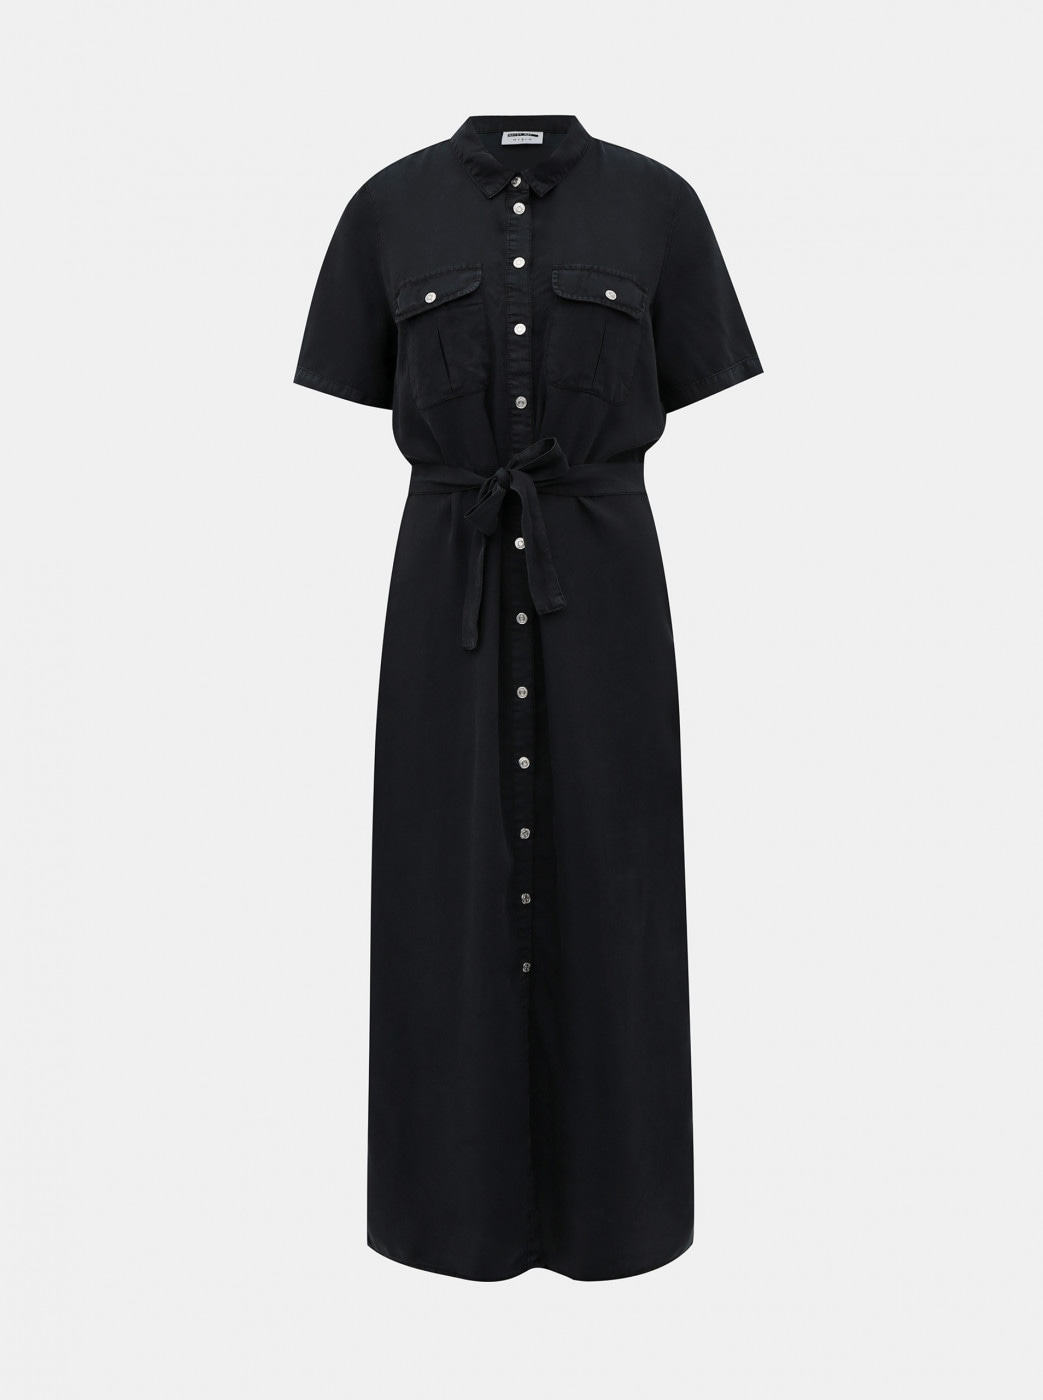 Noisy May Cersei Black Shirt Maxi Dress